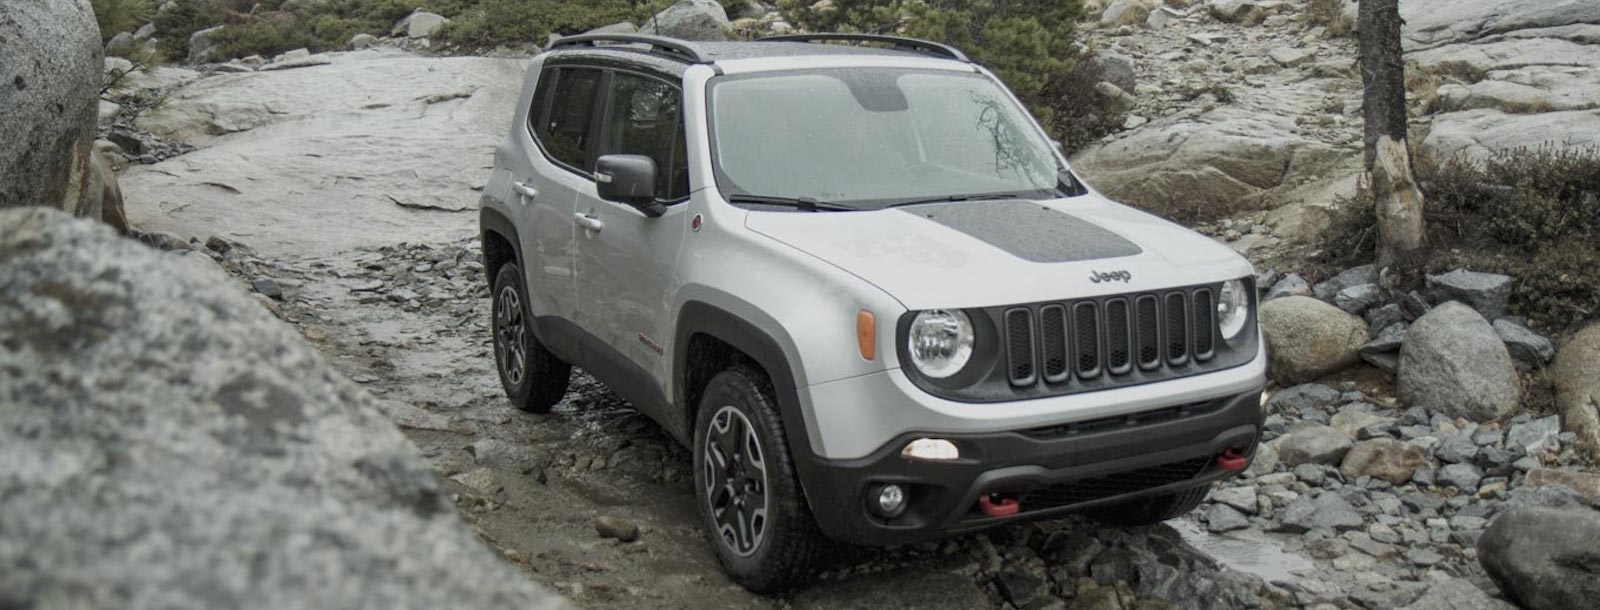 2016 Jeep Renegade Design